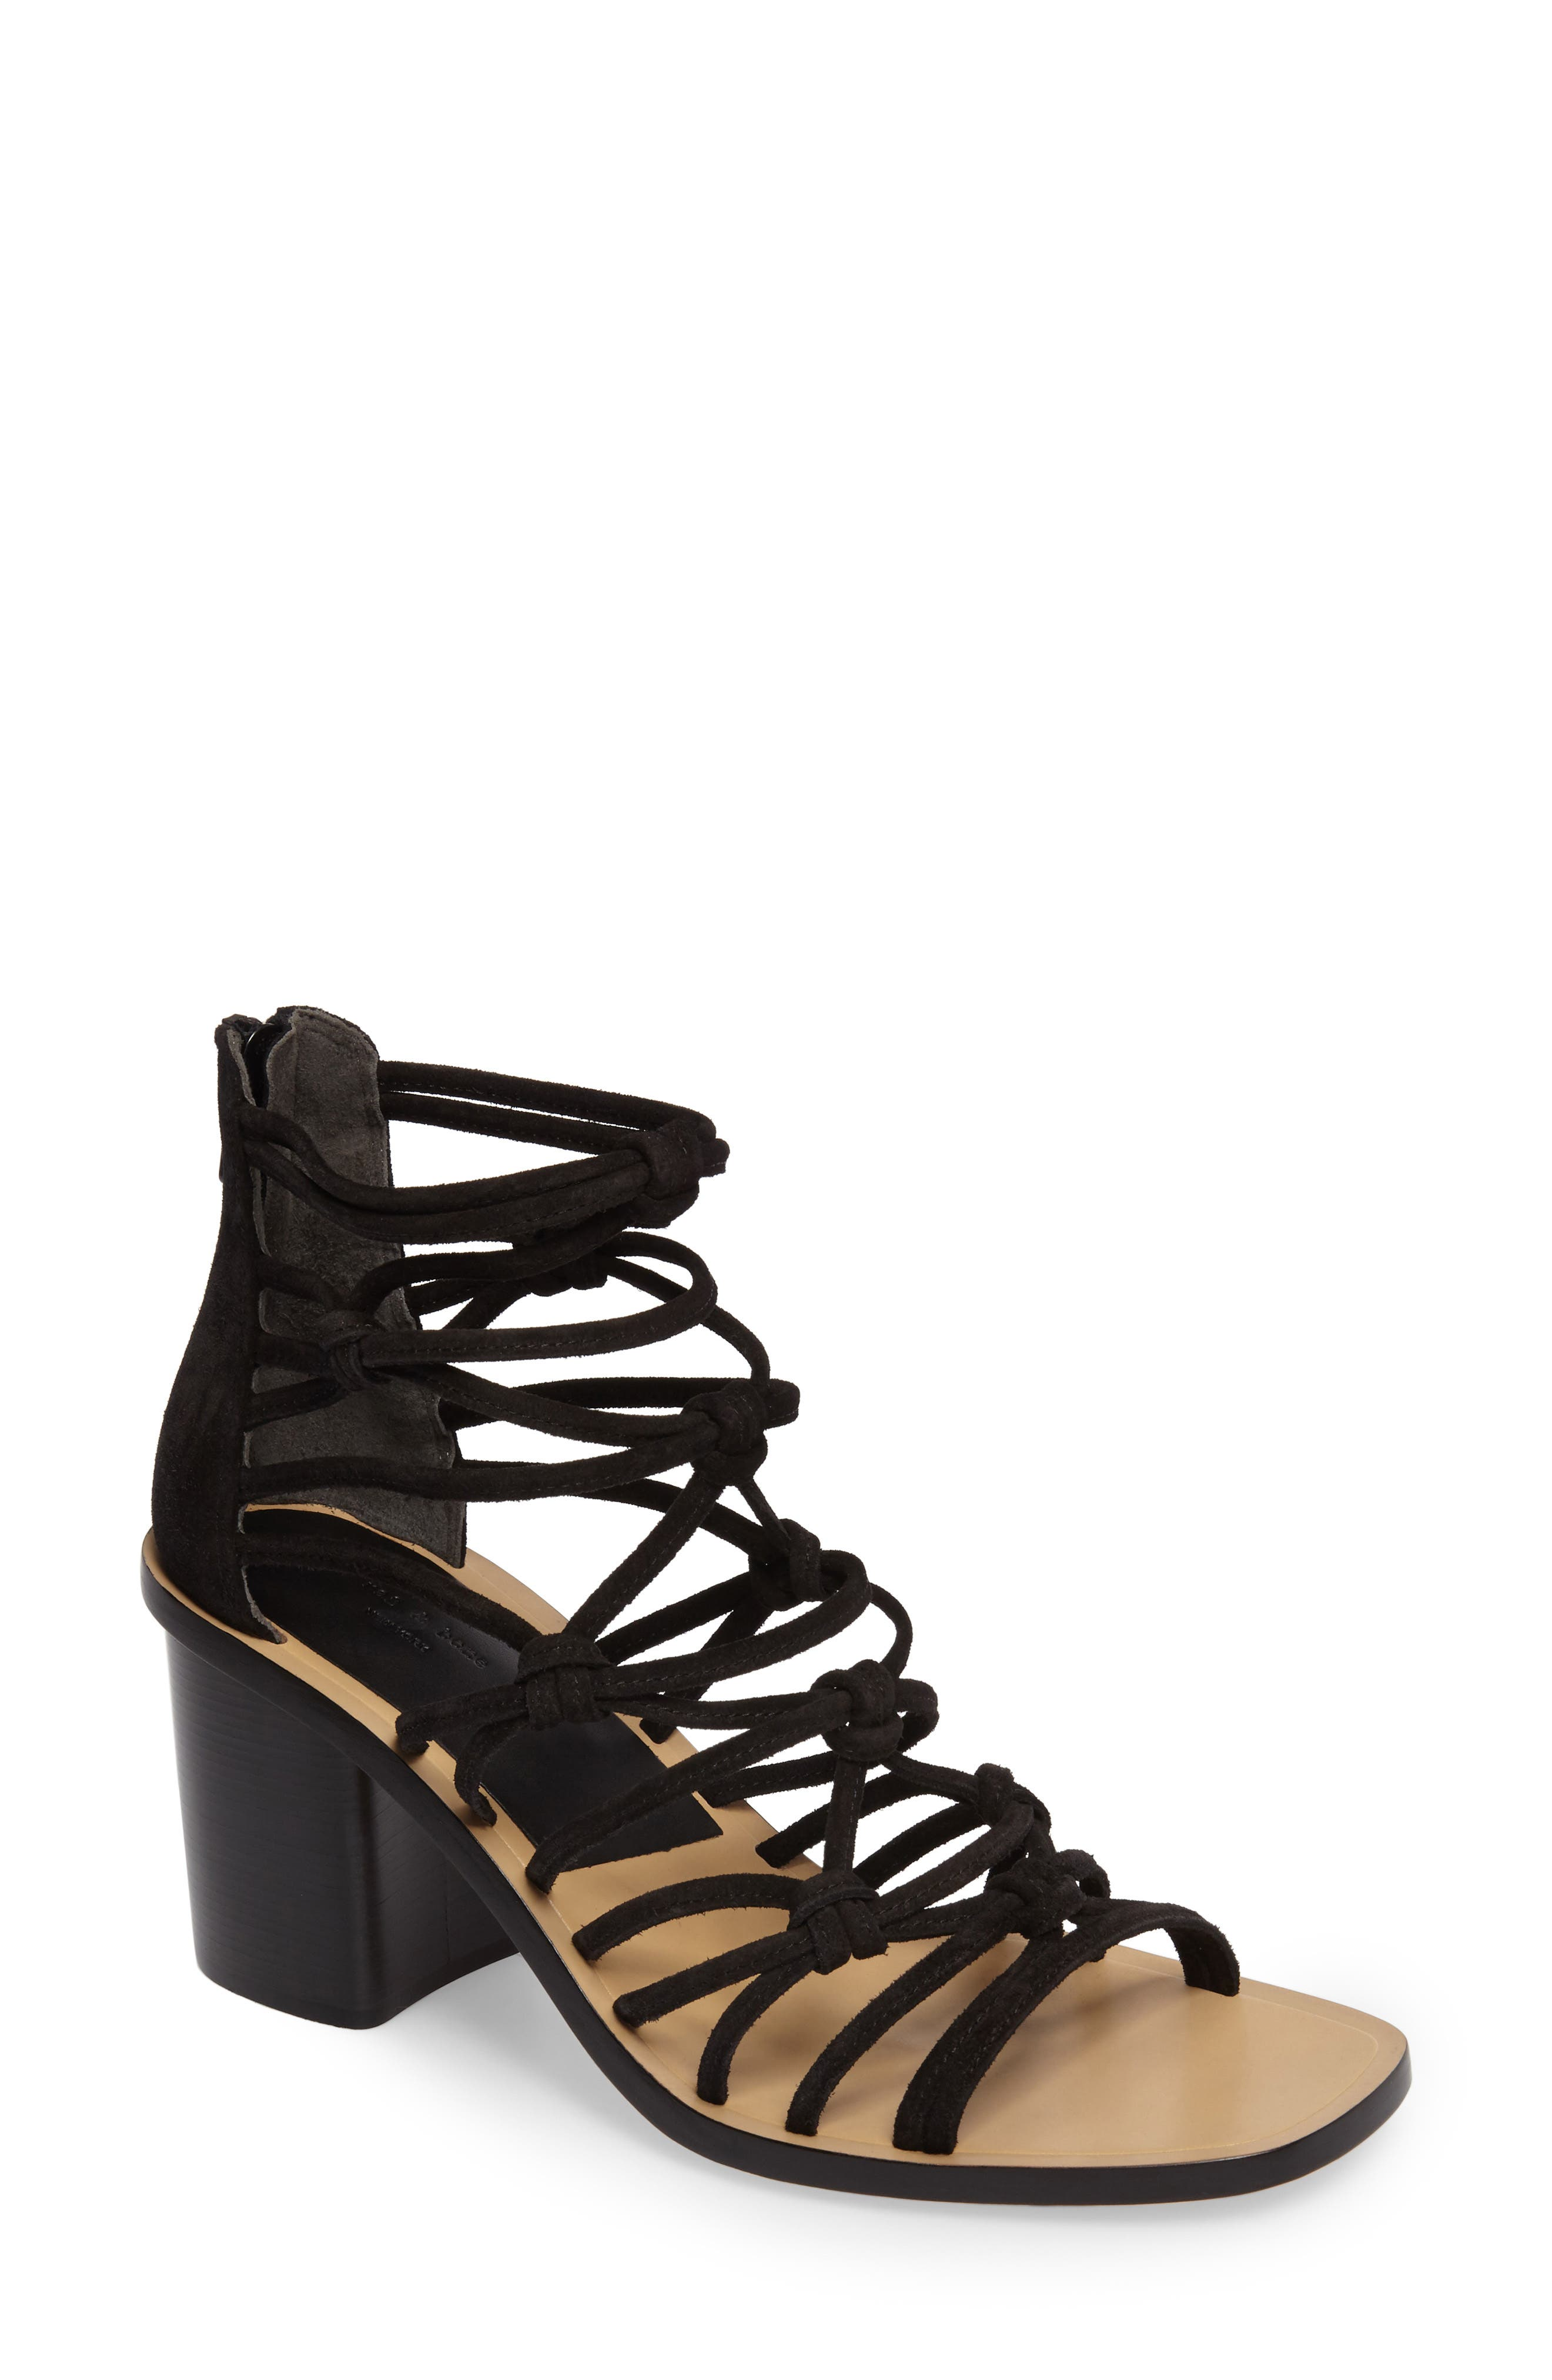 Camille Knotted Strappy Sandal,                         Main,                         color, Black Suede